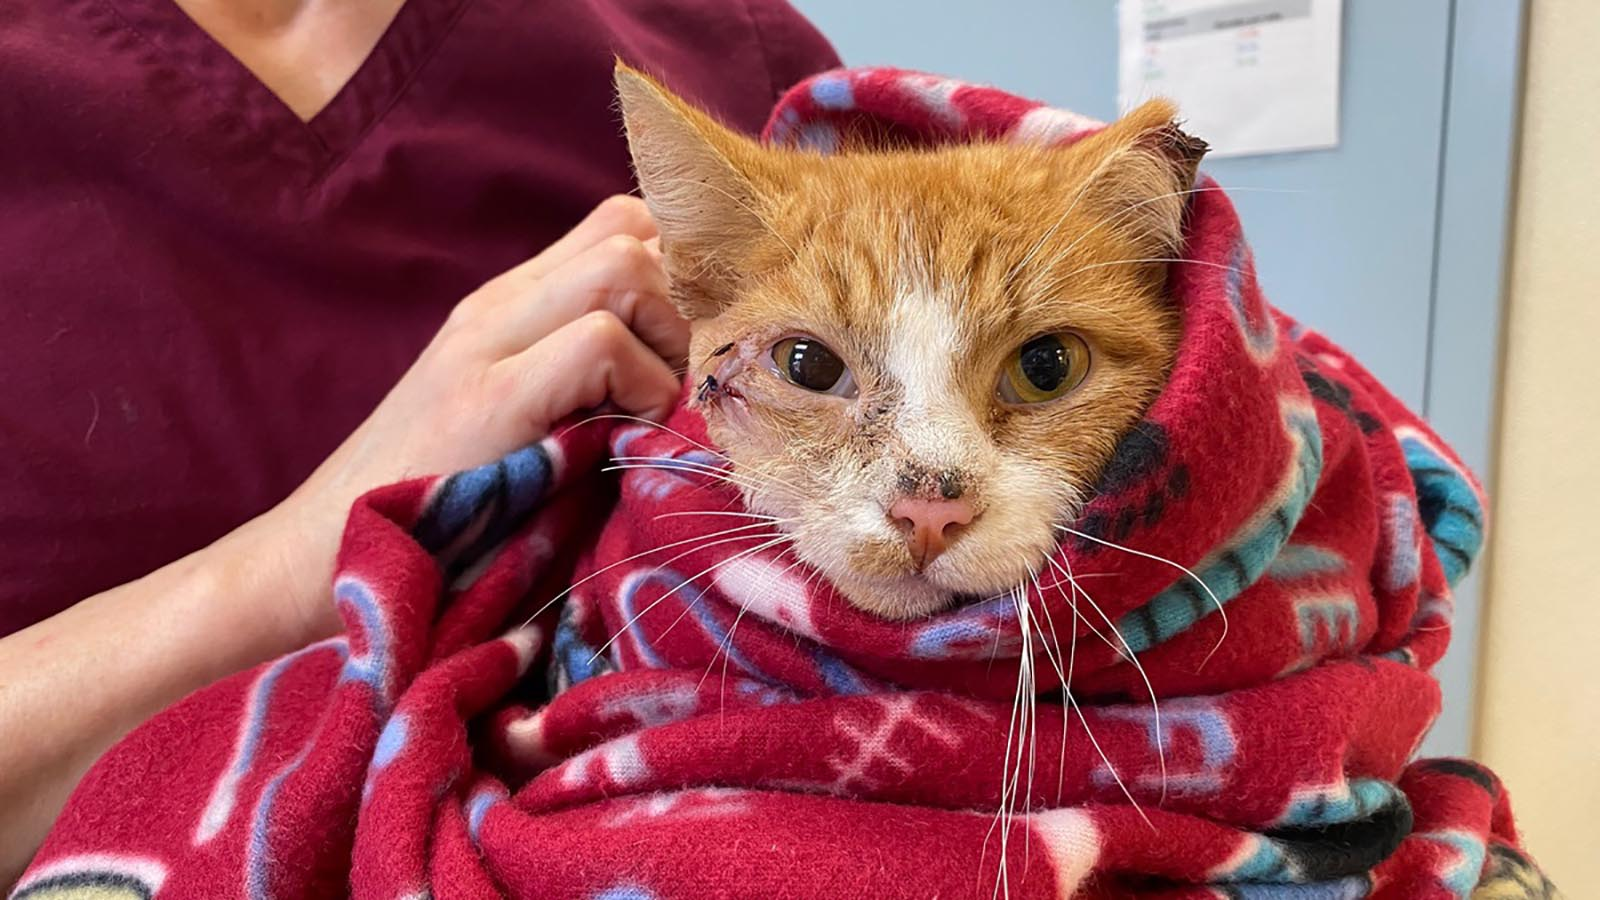 An orange tabby cat got a new lease on life and a name to go with it after veterinarians removed an arrow that someone had shot through his head.